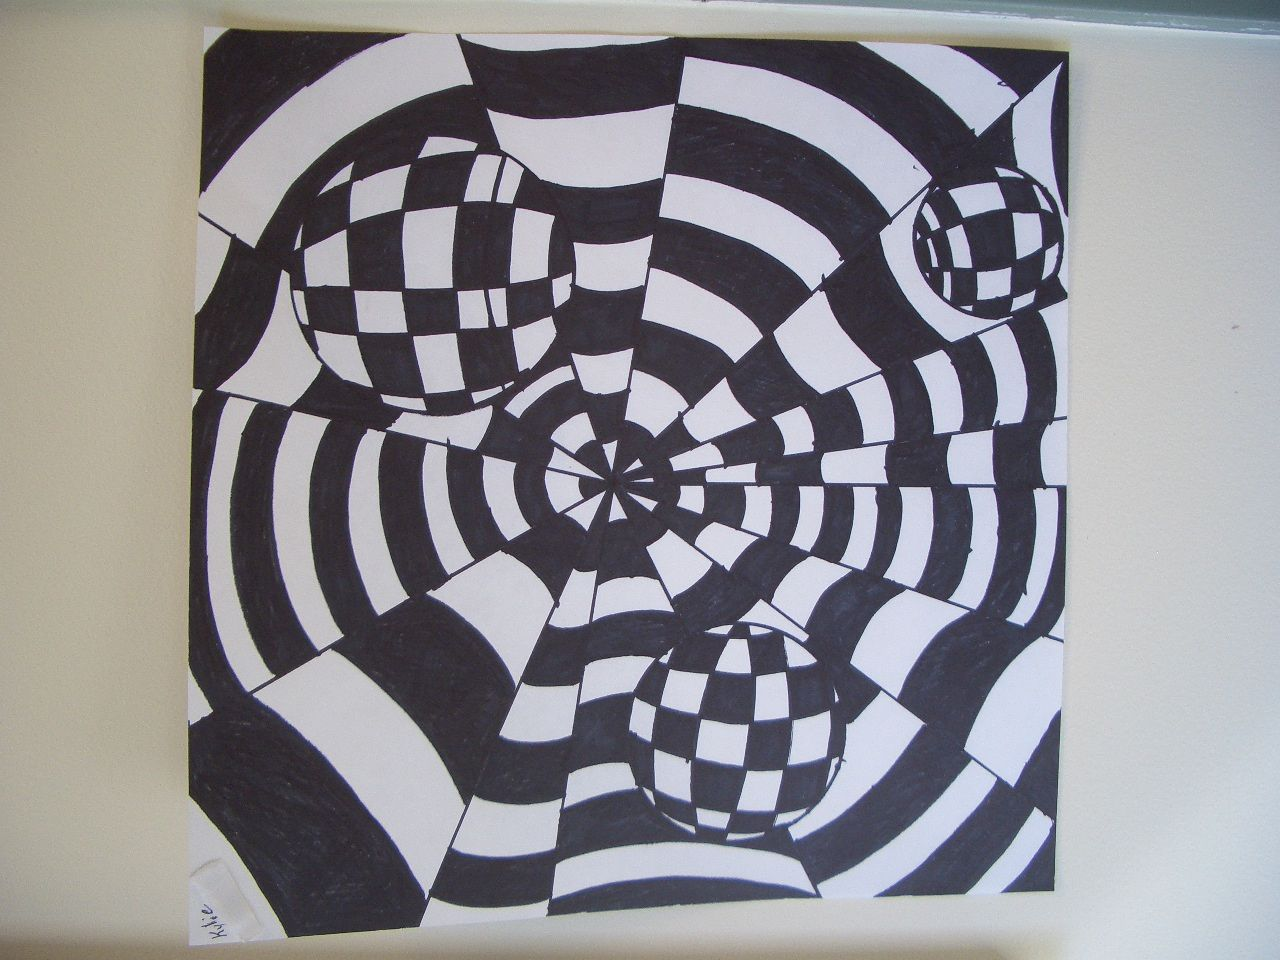 Op art uses color to create - Dream Draw Create Art Lessons For Children Op Art By Grade 8